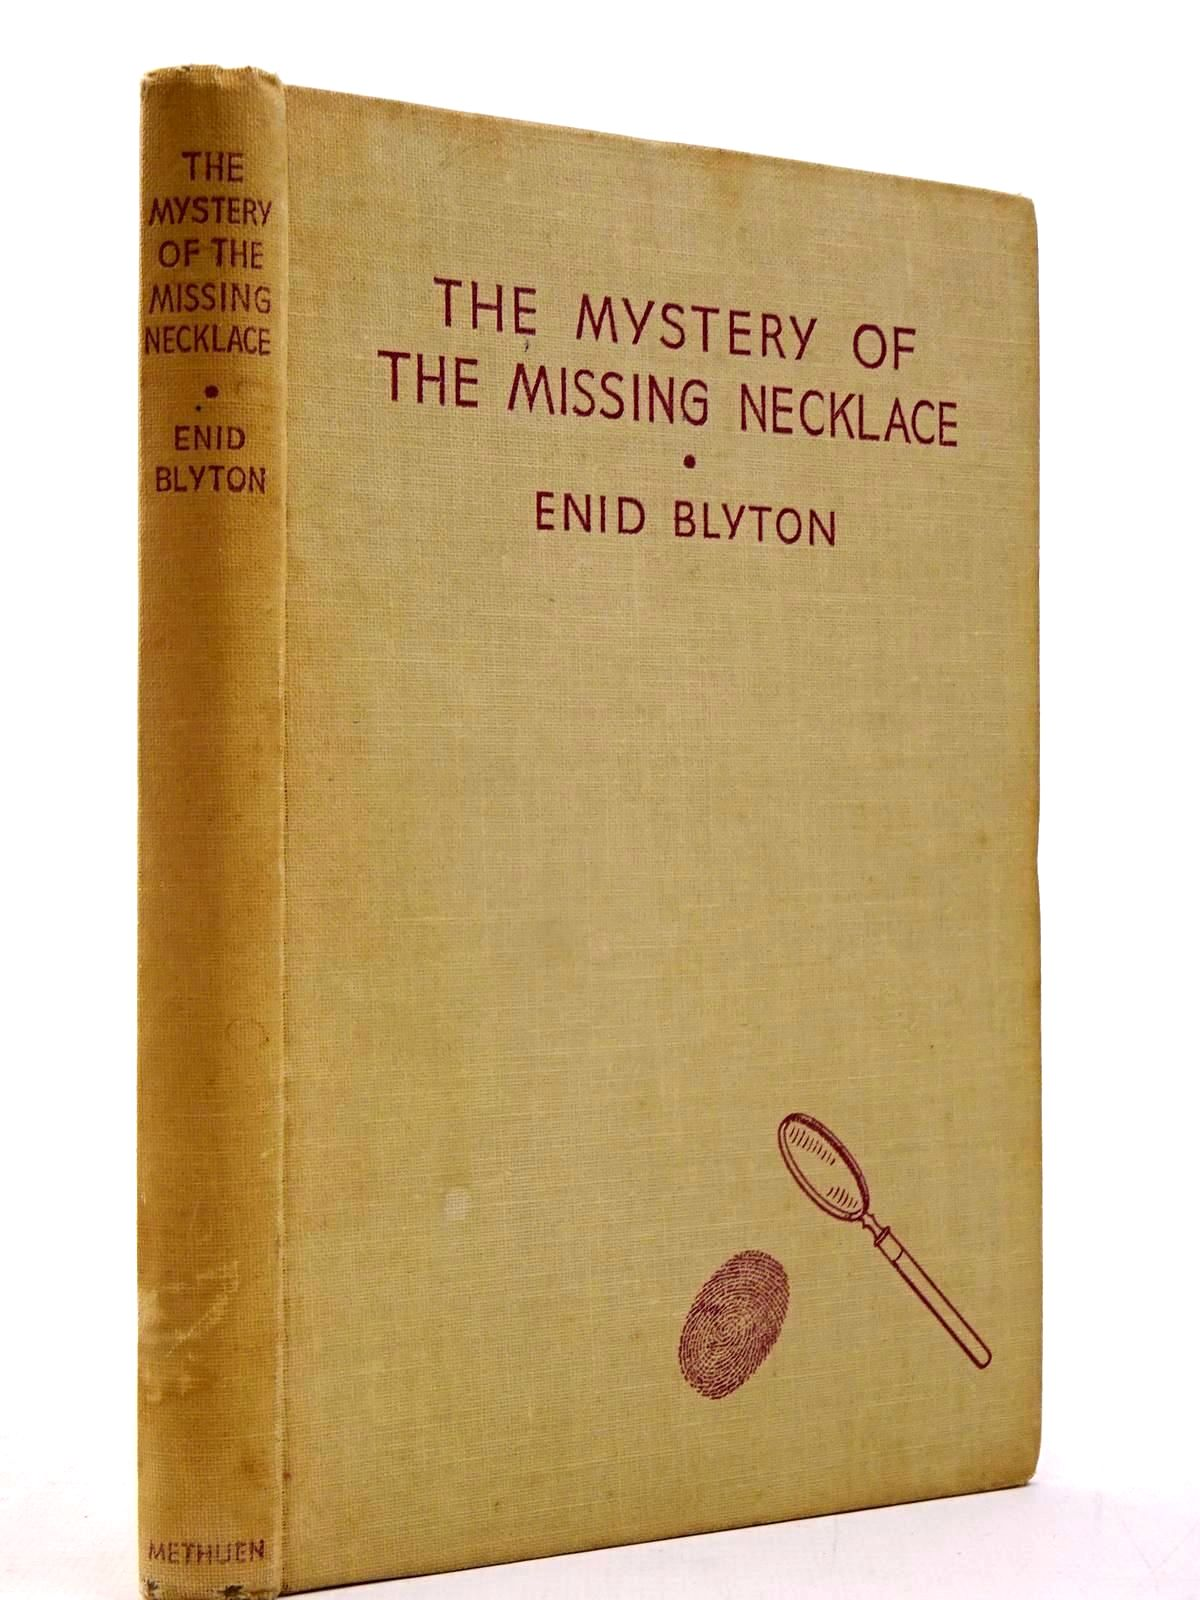 Photo of THE MYSTERY OF THE MISSING NECKLACE written by Blyton, Enid illustrated by Abbey, J. published by Methuen & Co. Ltd. (STOCK CODE: 2130178)  for sale by Stella & Rose's Books